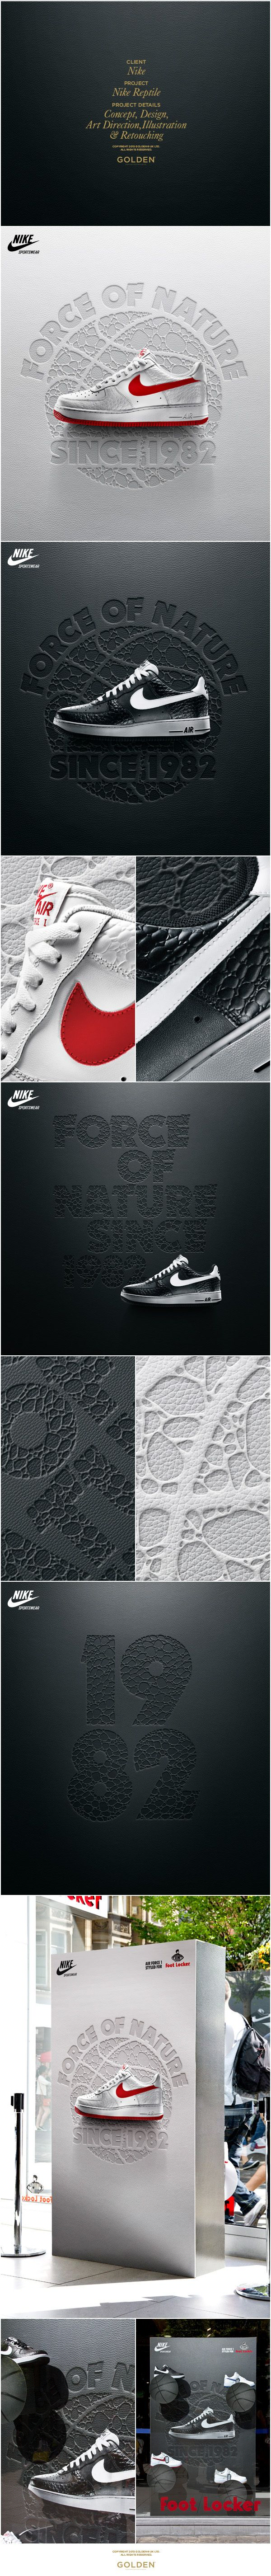 Nike Reptile by GOLDEN , via Behance